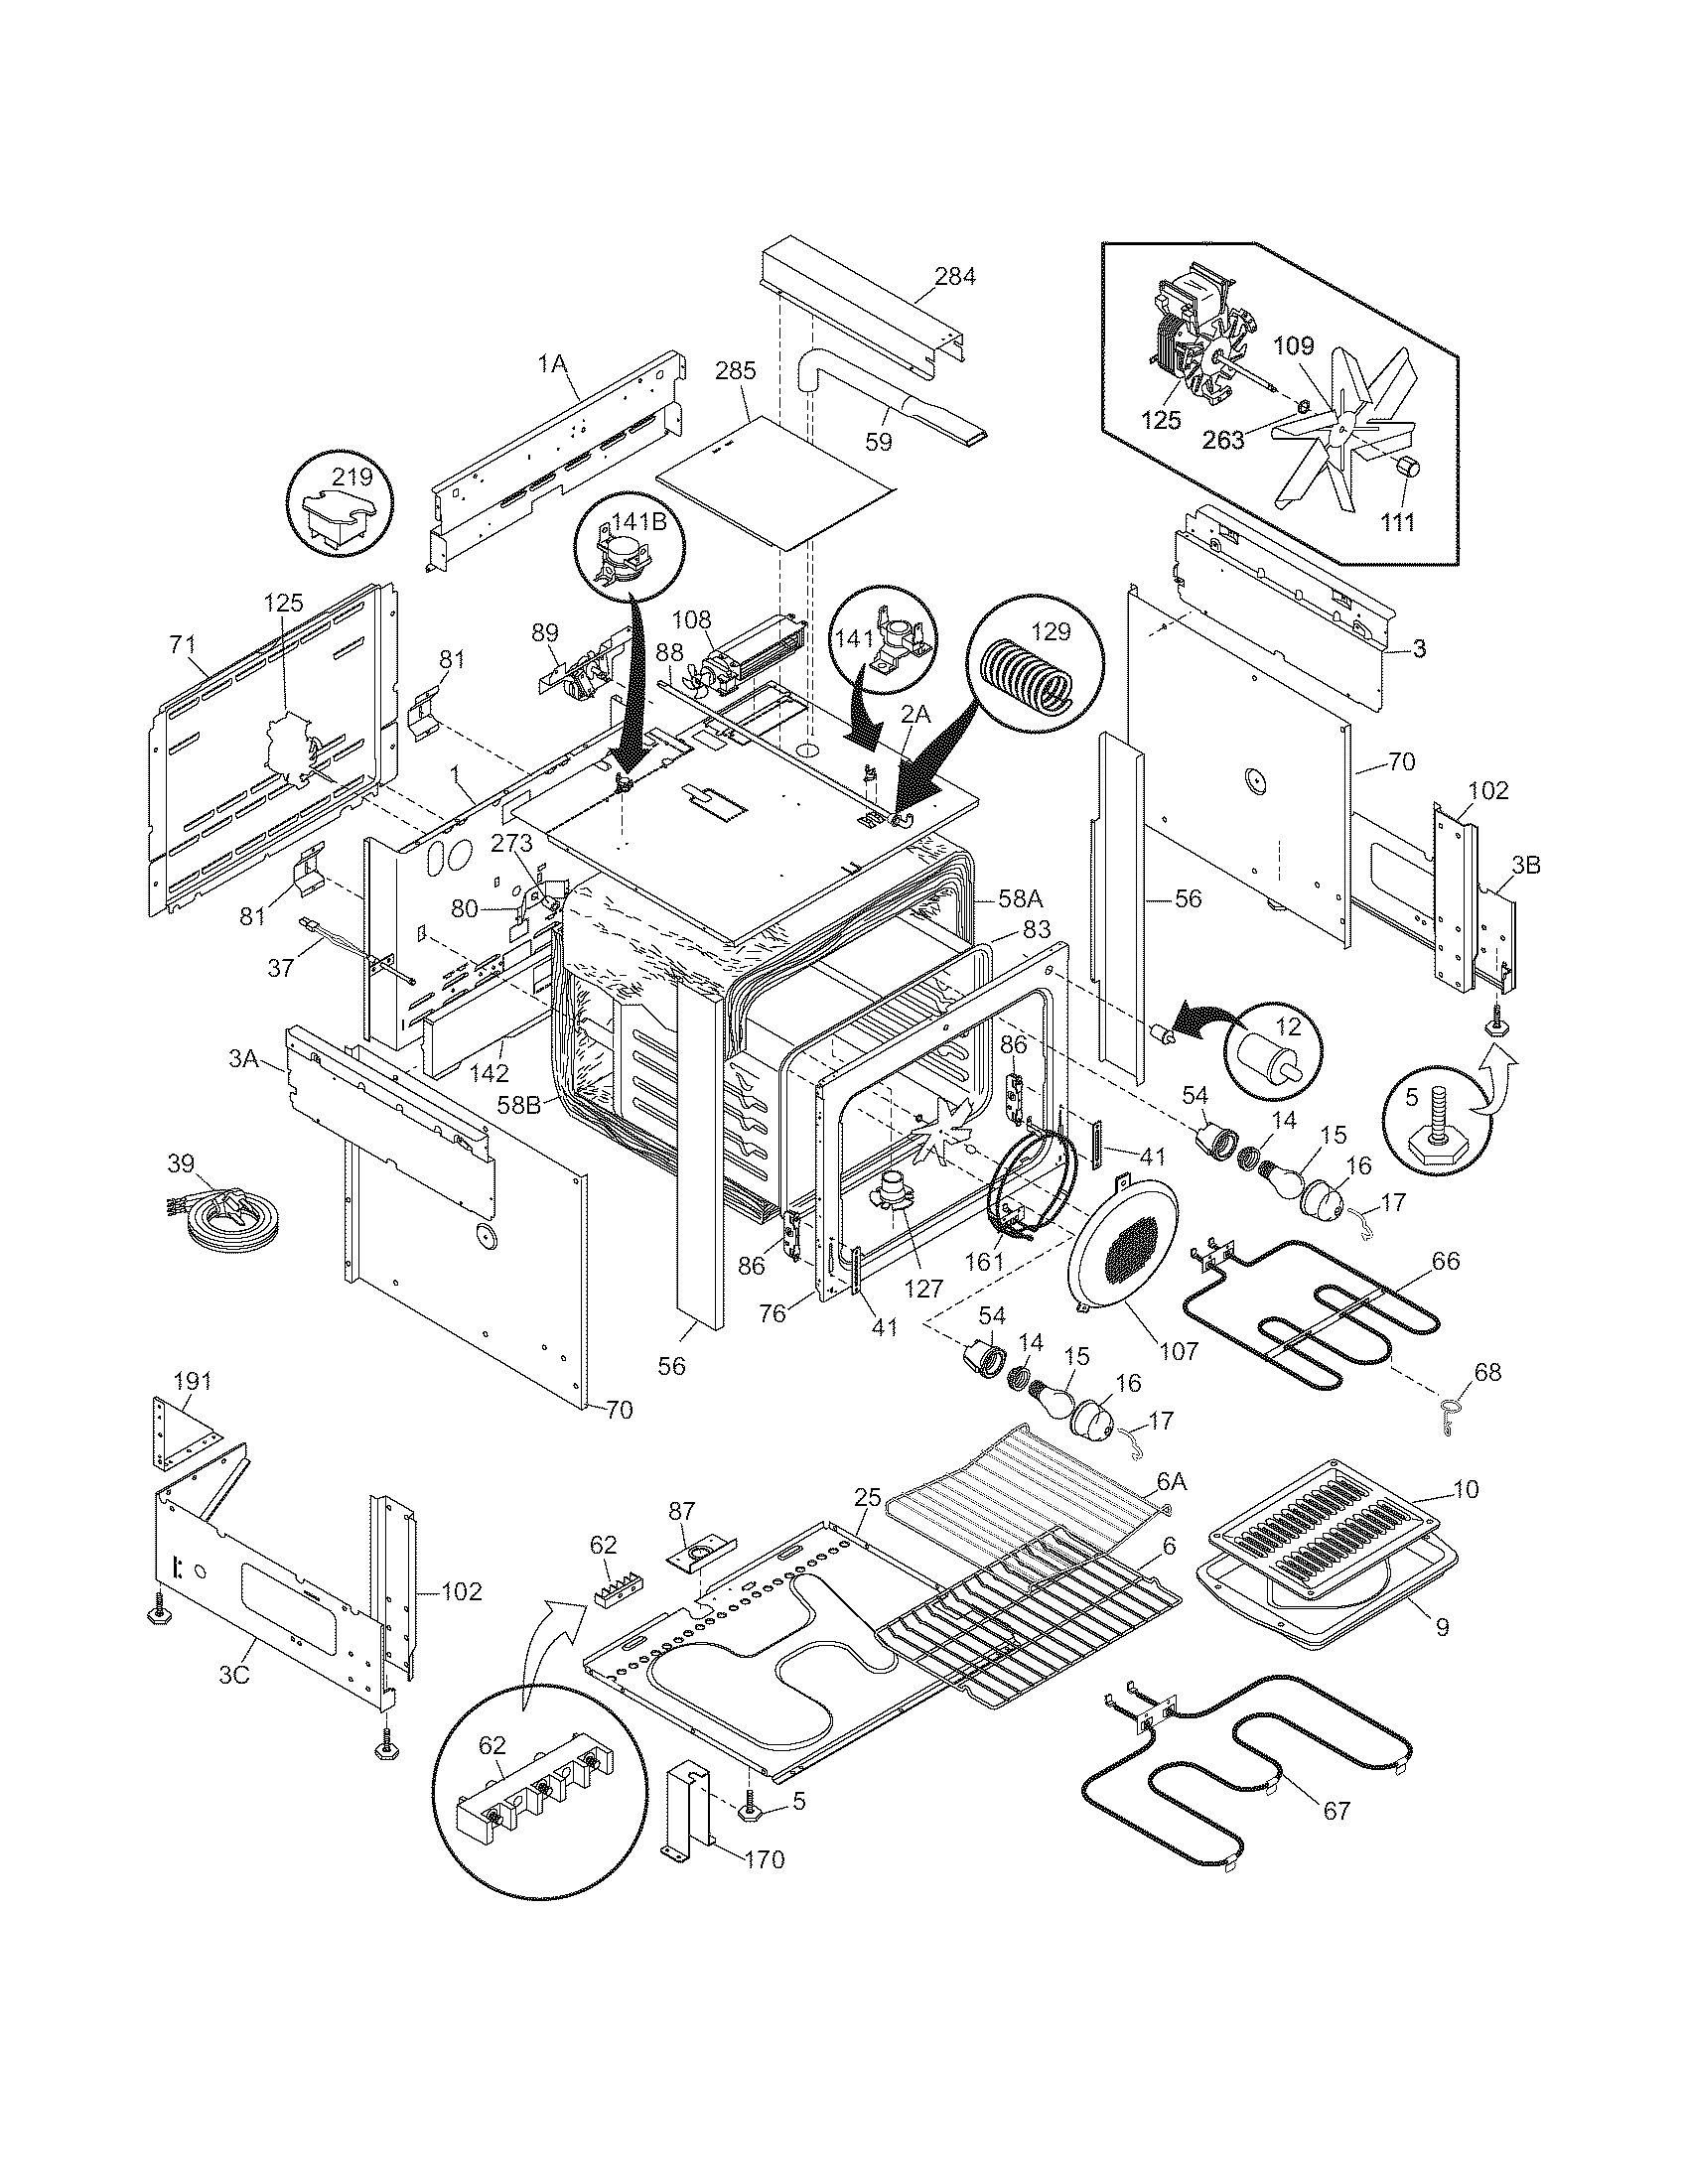 Hobart A200 Mixer Parts Diagram